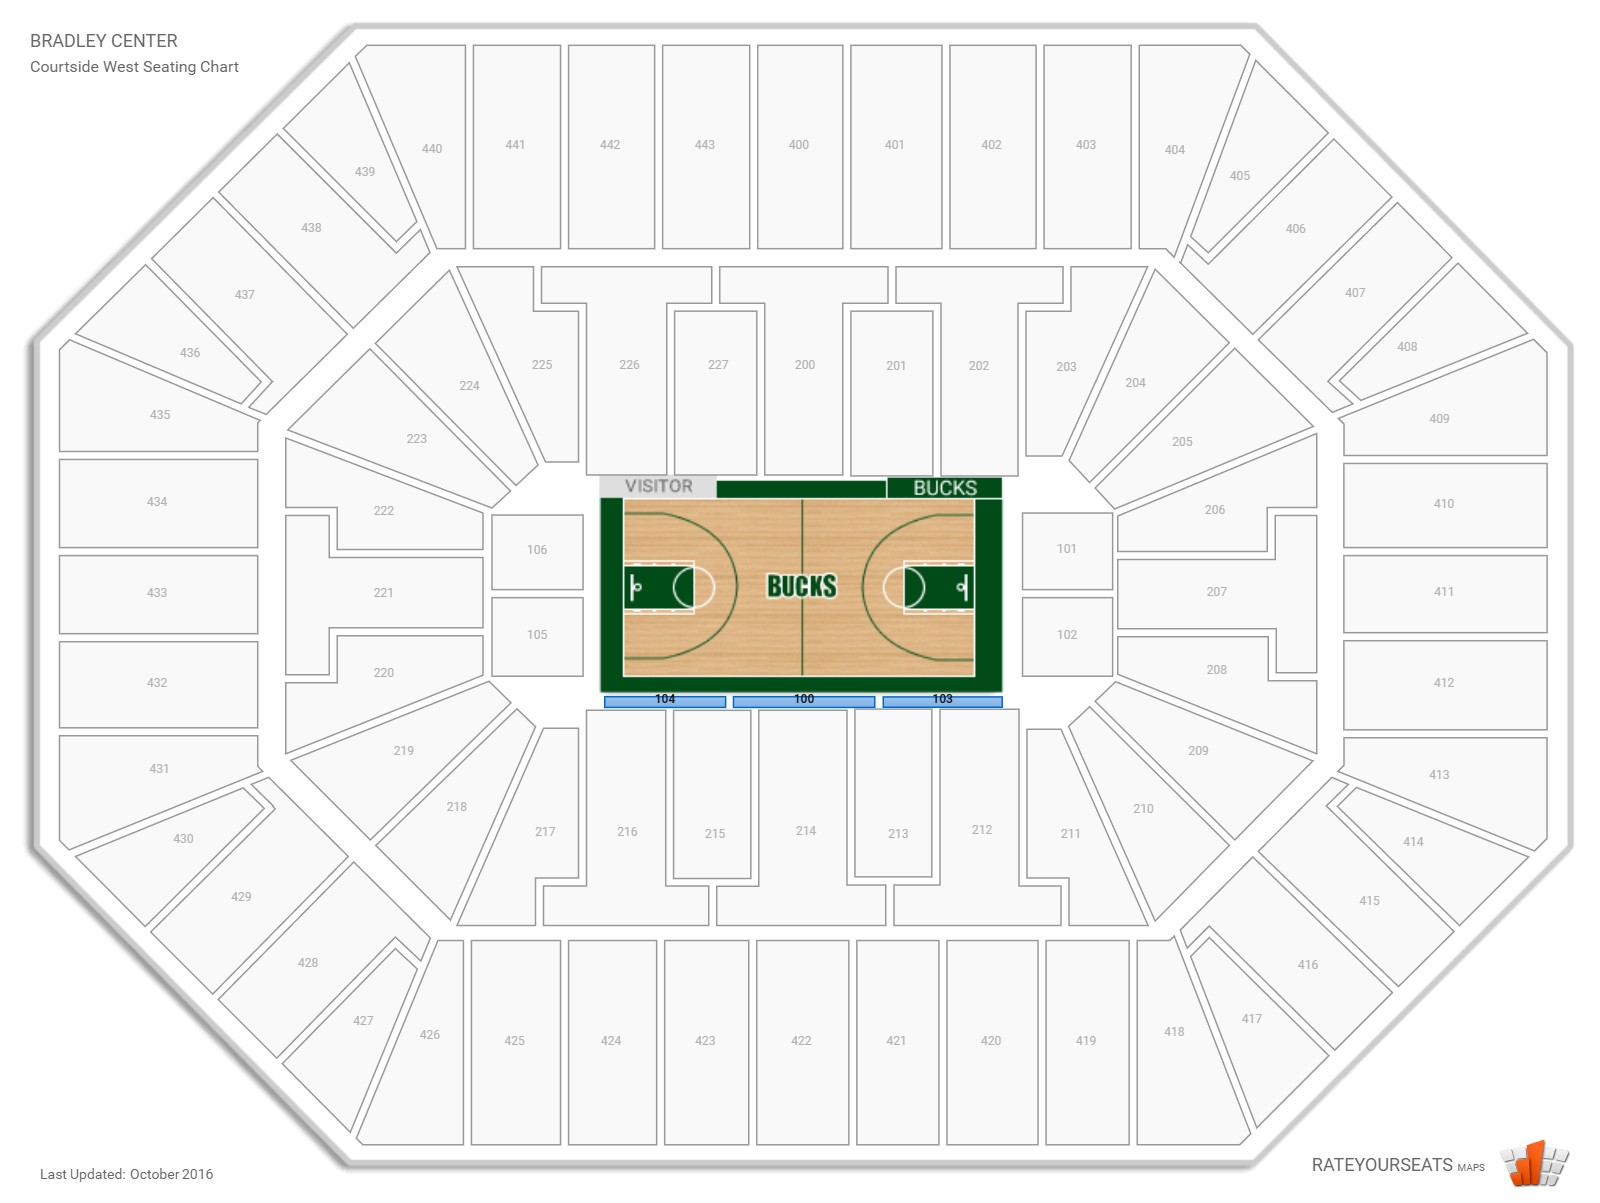 Bradley Center Courtside West seating chart